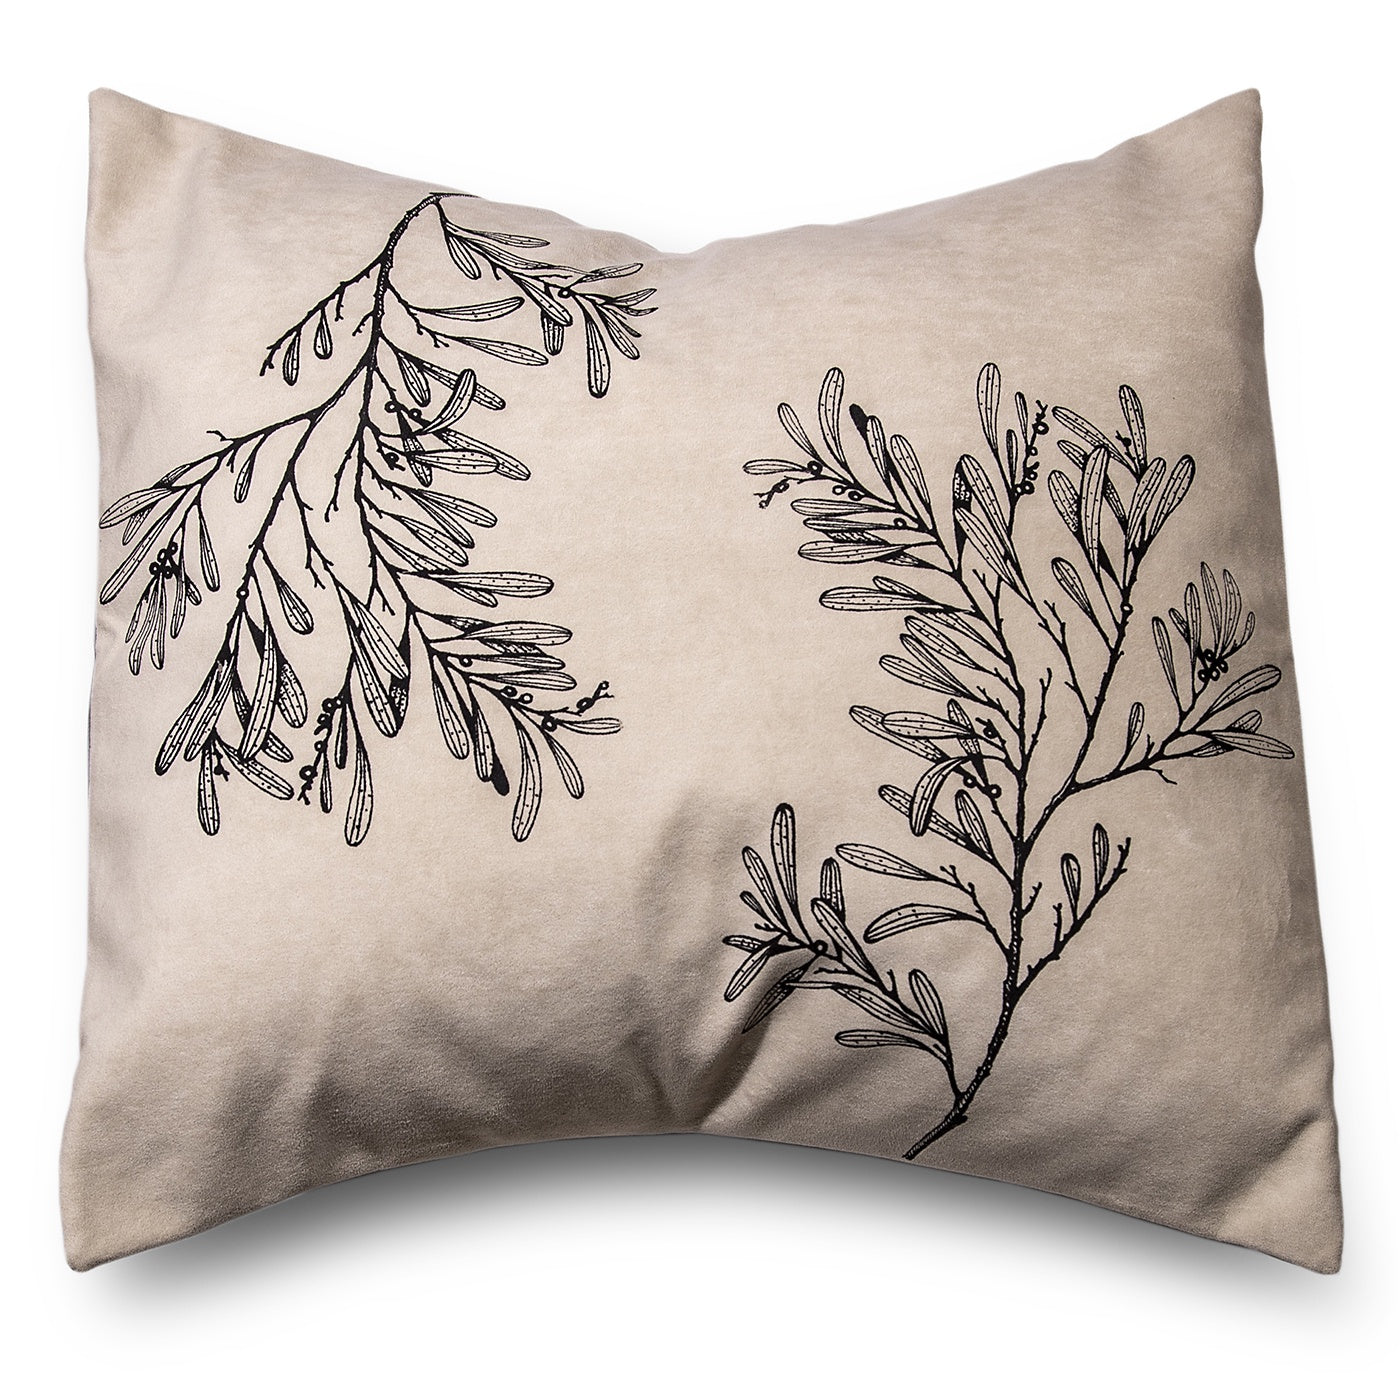 Stalley Textile Co. - Cushion Cover - Blackwood - Black on Cream